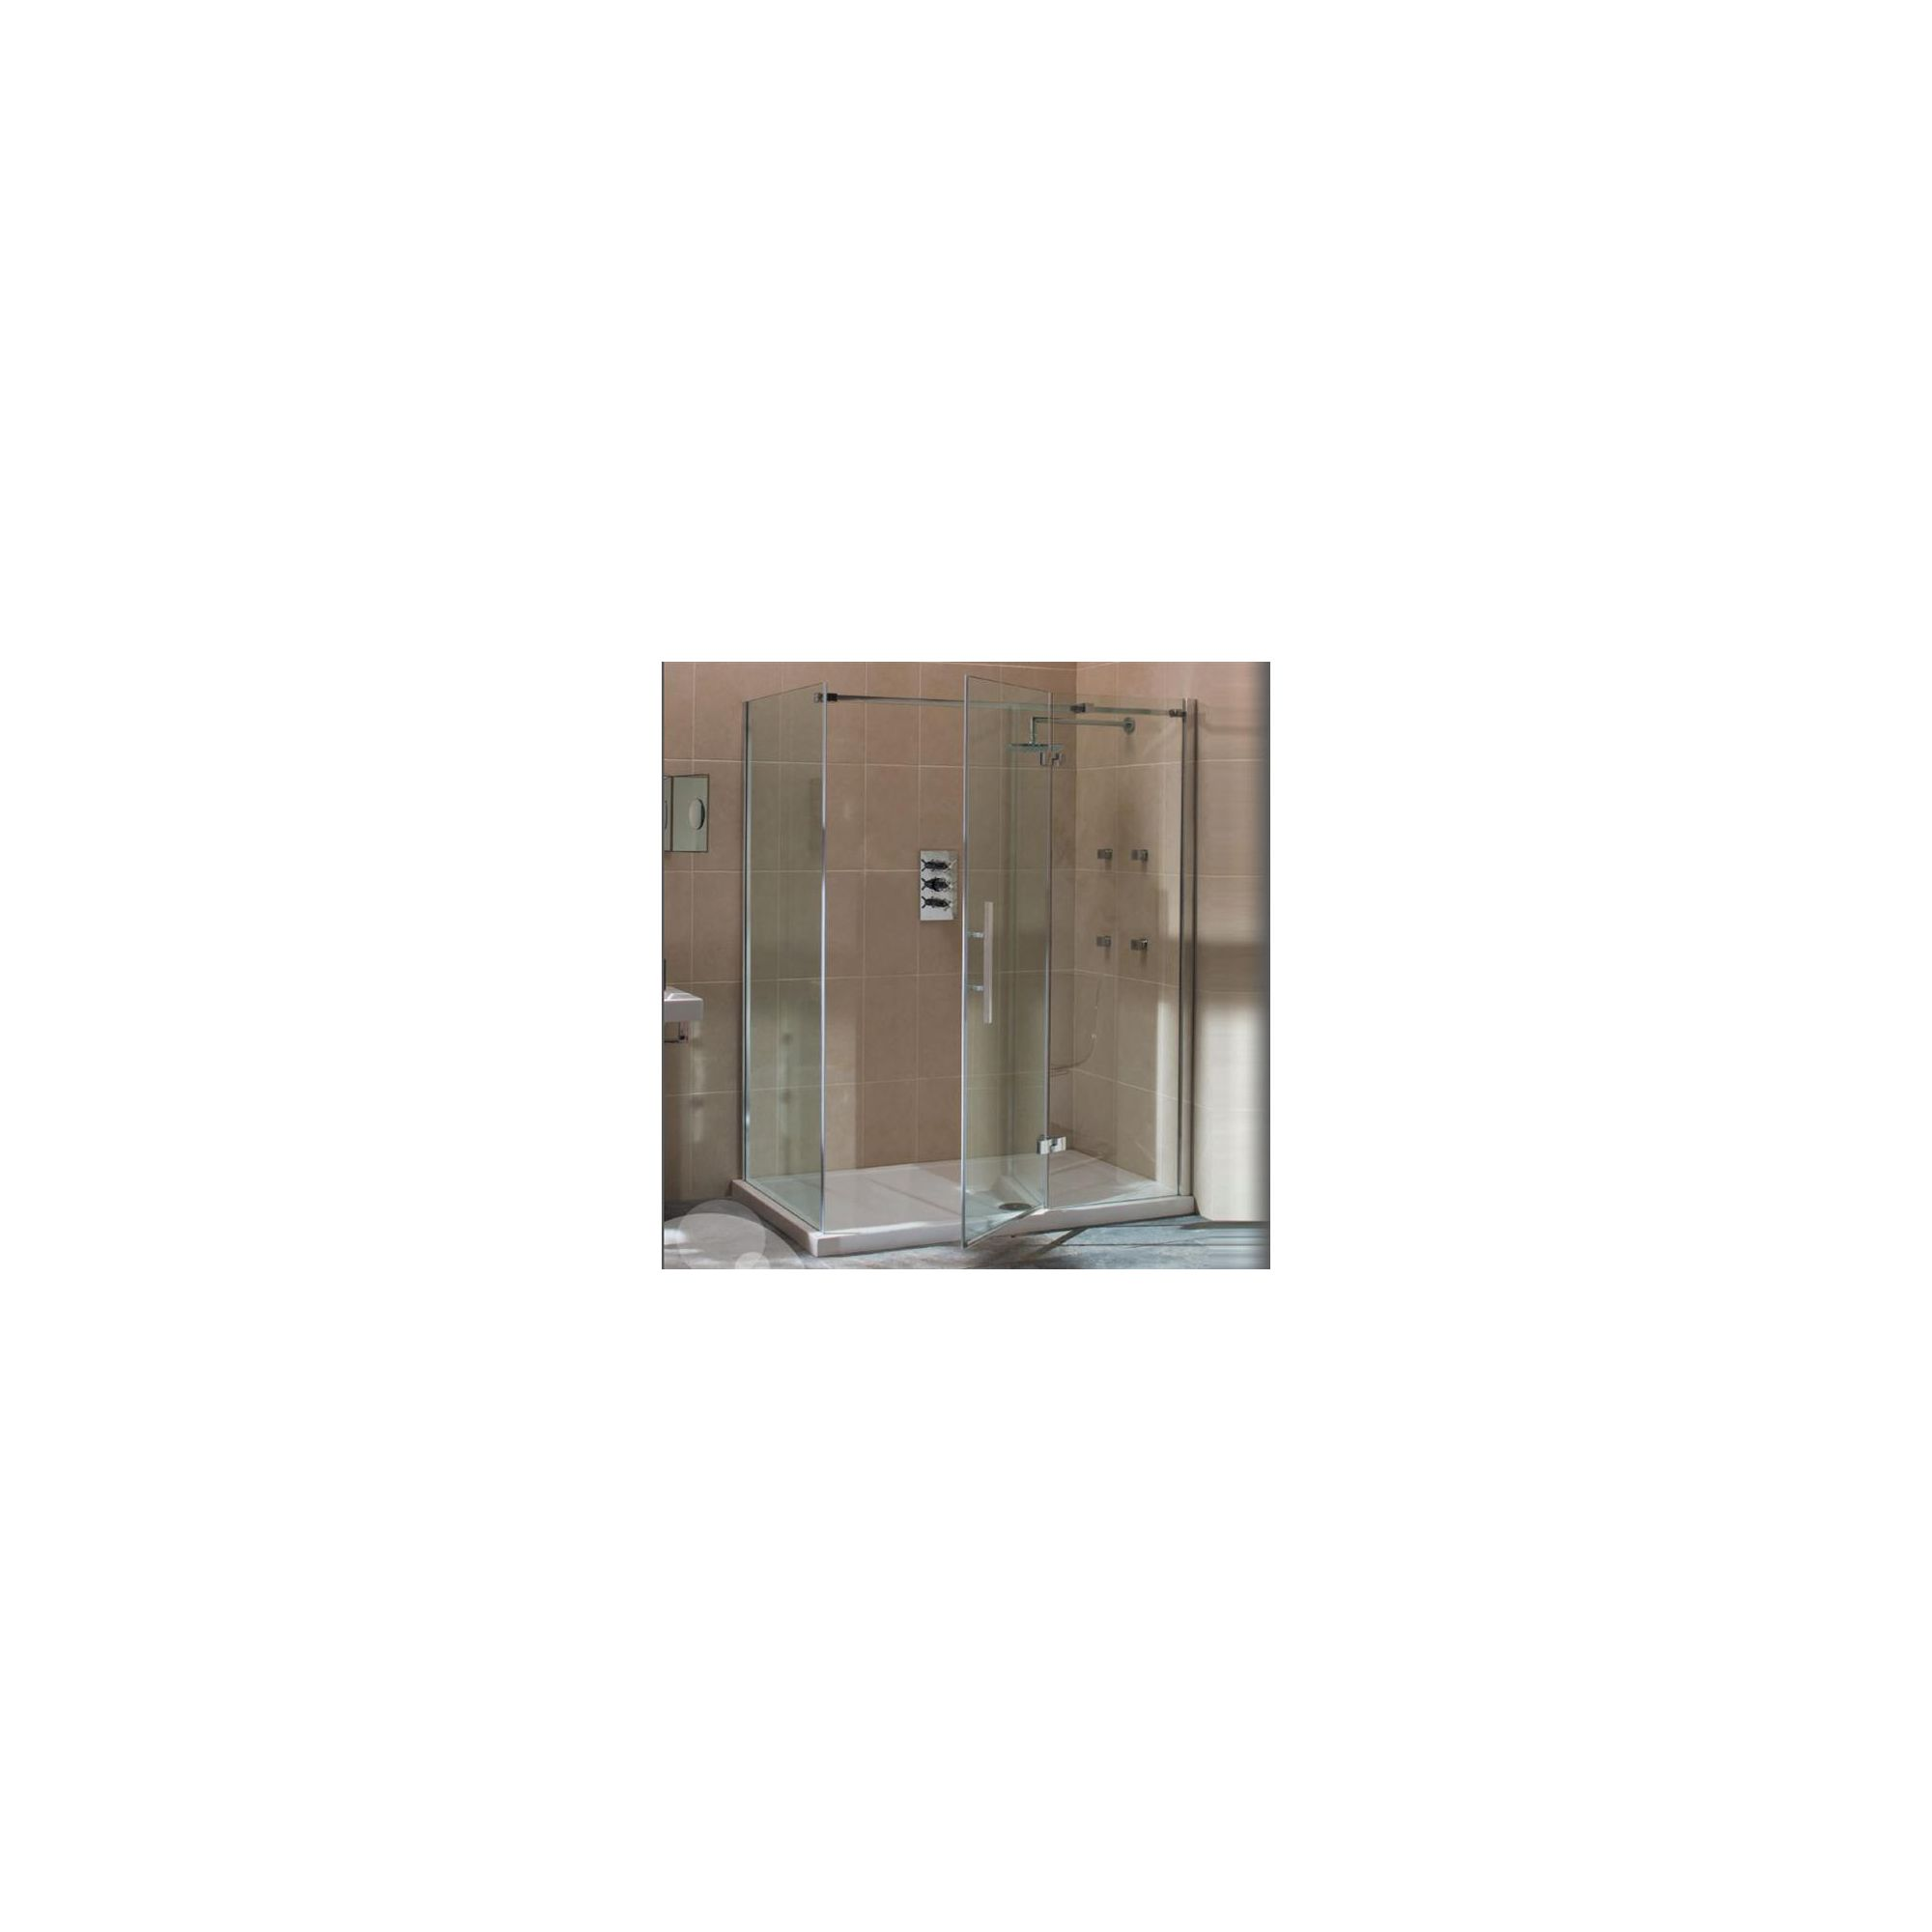 Merlyn Vivid Nine Hinged Door Shower Enclosure with Inline Panel, 1600mm x 800mm, Right Handed, Low Profile Tray, 8mm Glass at Tesco Direct